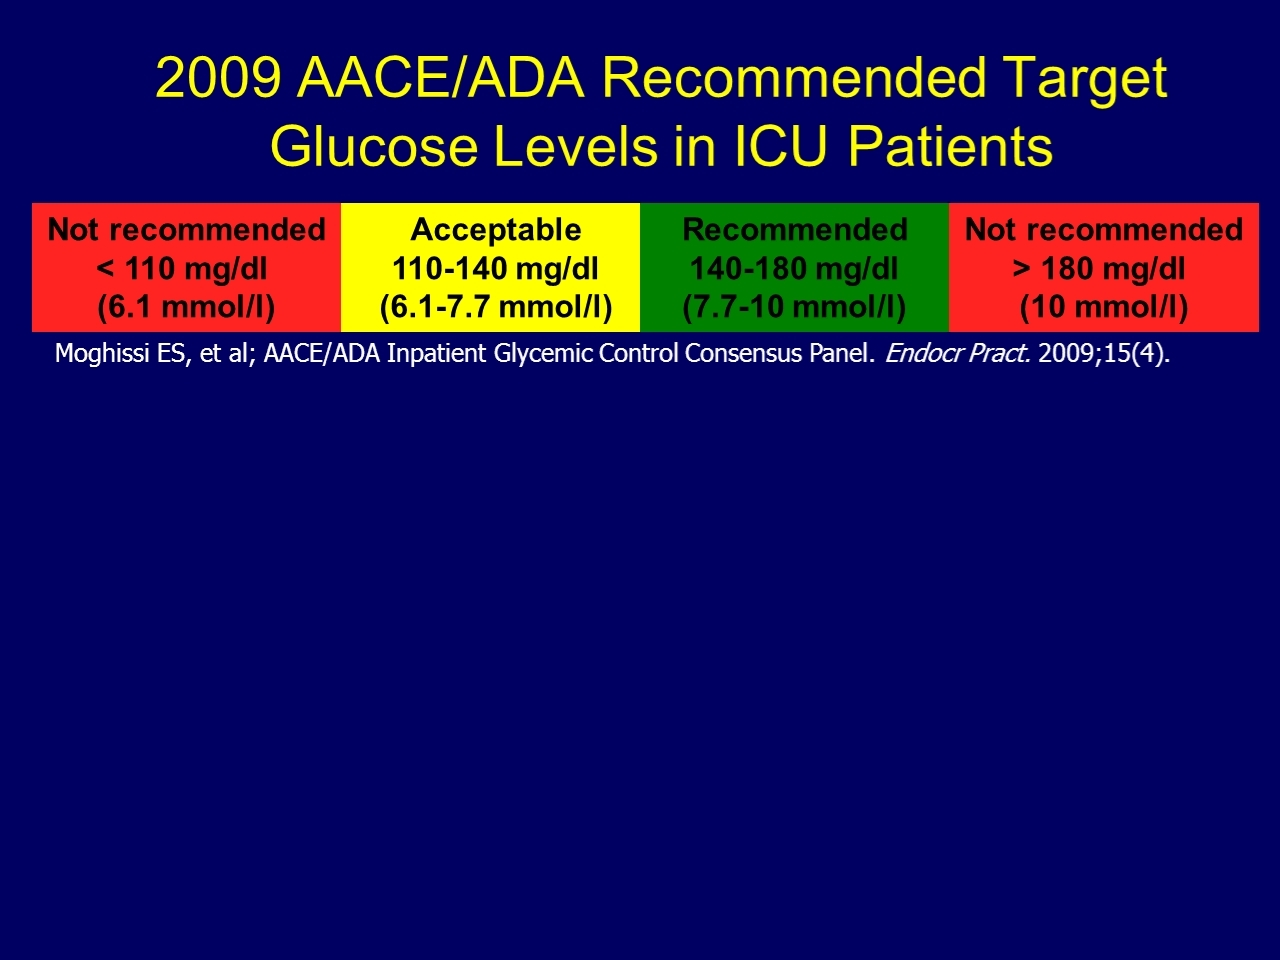 Intensive versus conservative glucose control in patients